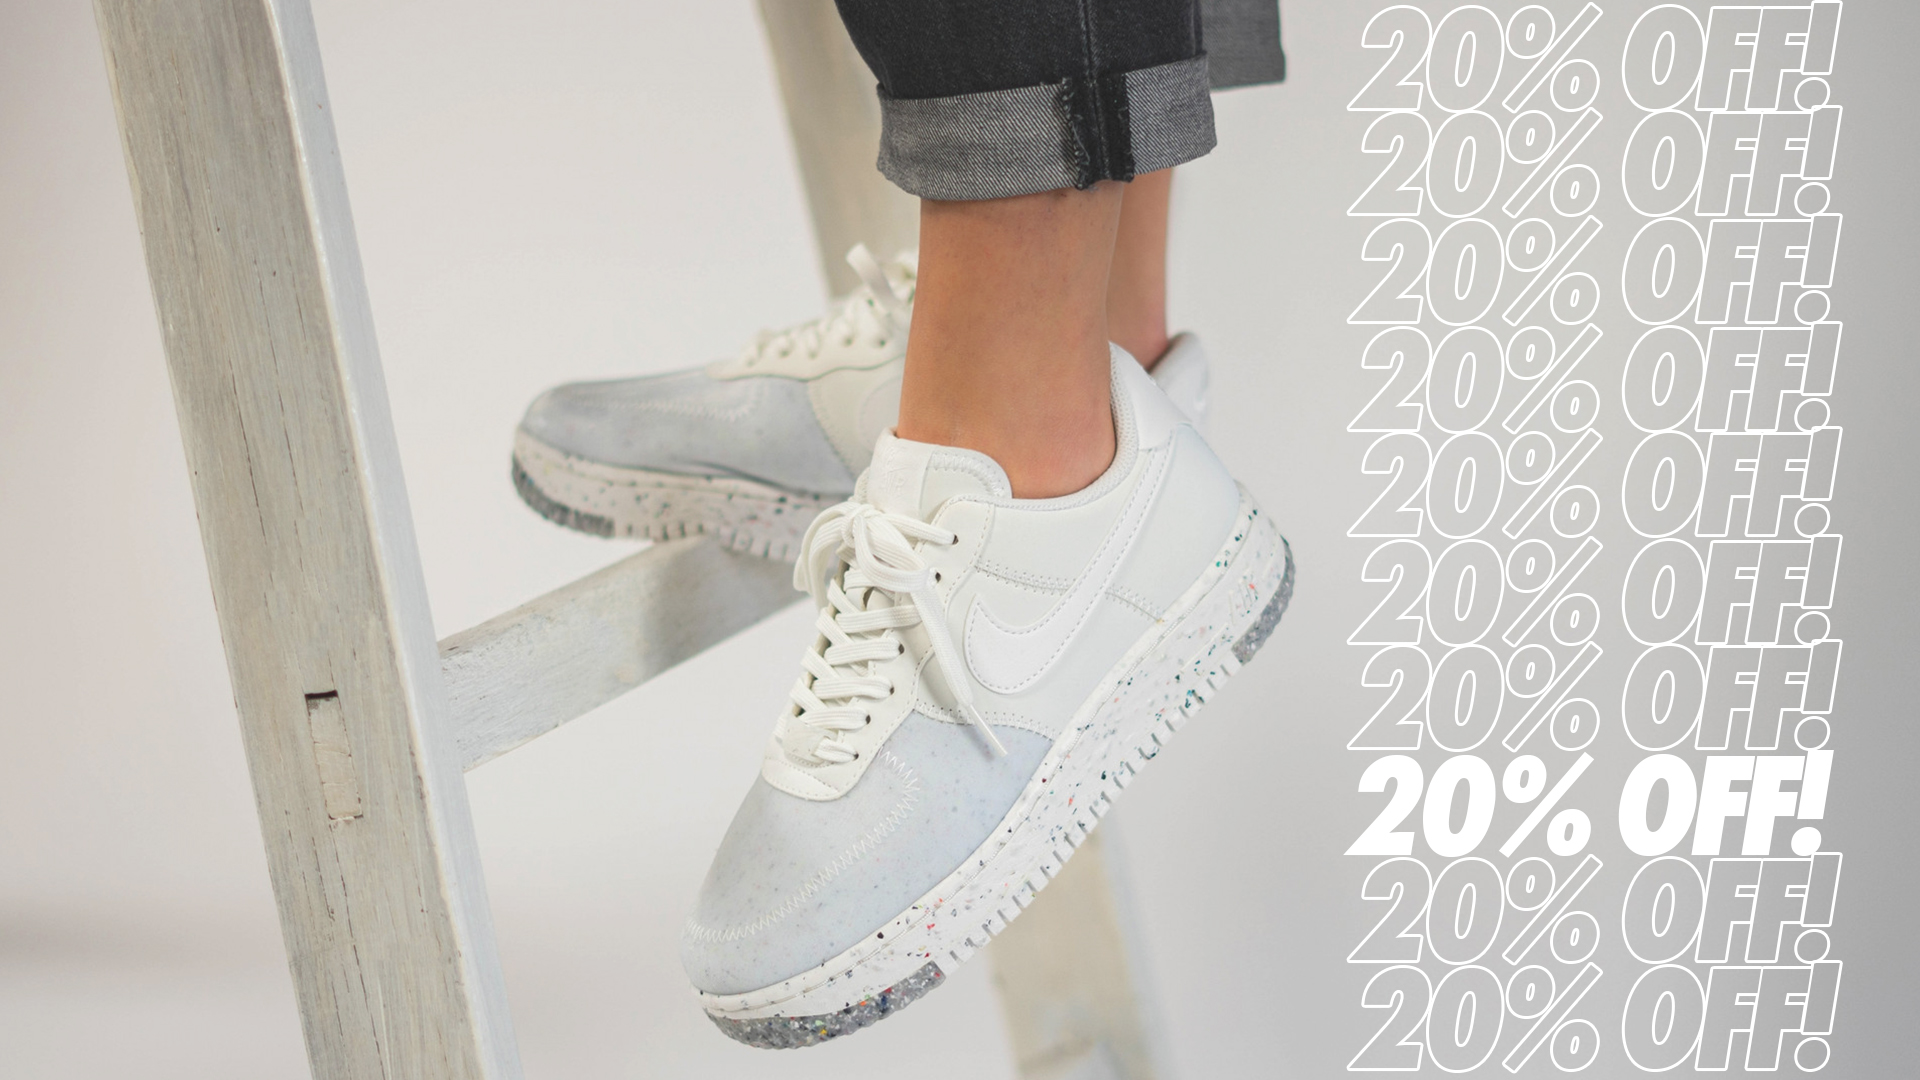 Take 20% Off These Kicks at ASOS! Limited Time Only!